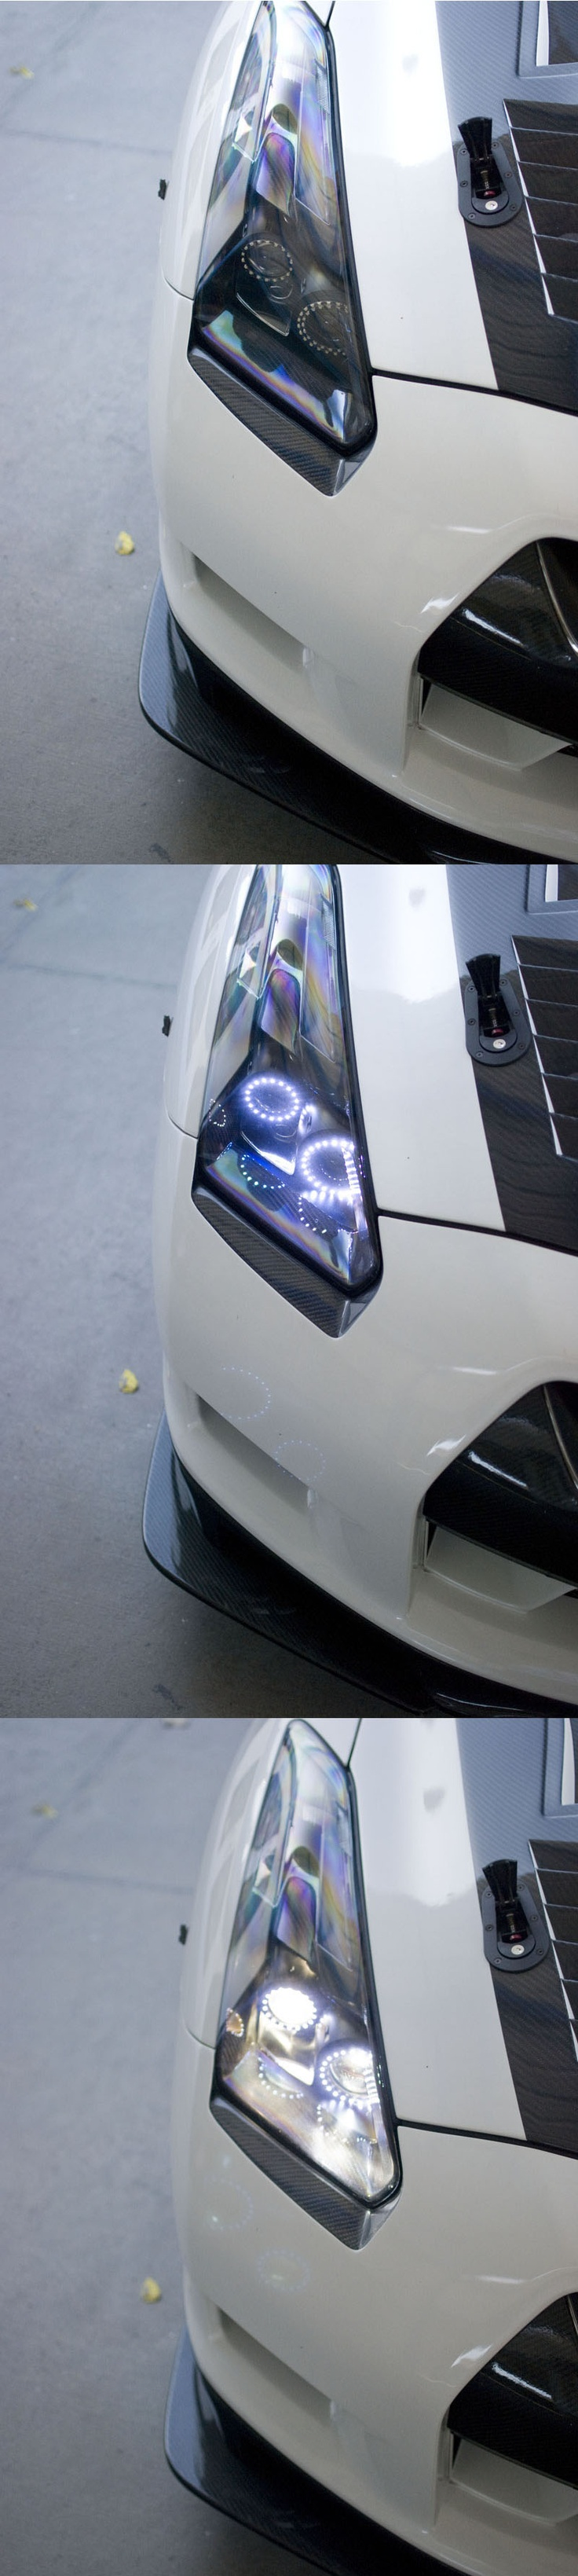 Nissan GTR LED Headlights. Black Satin Finish, shown off, with Angel Eyes only, and with Dual Projectors and Angel Eyes.